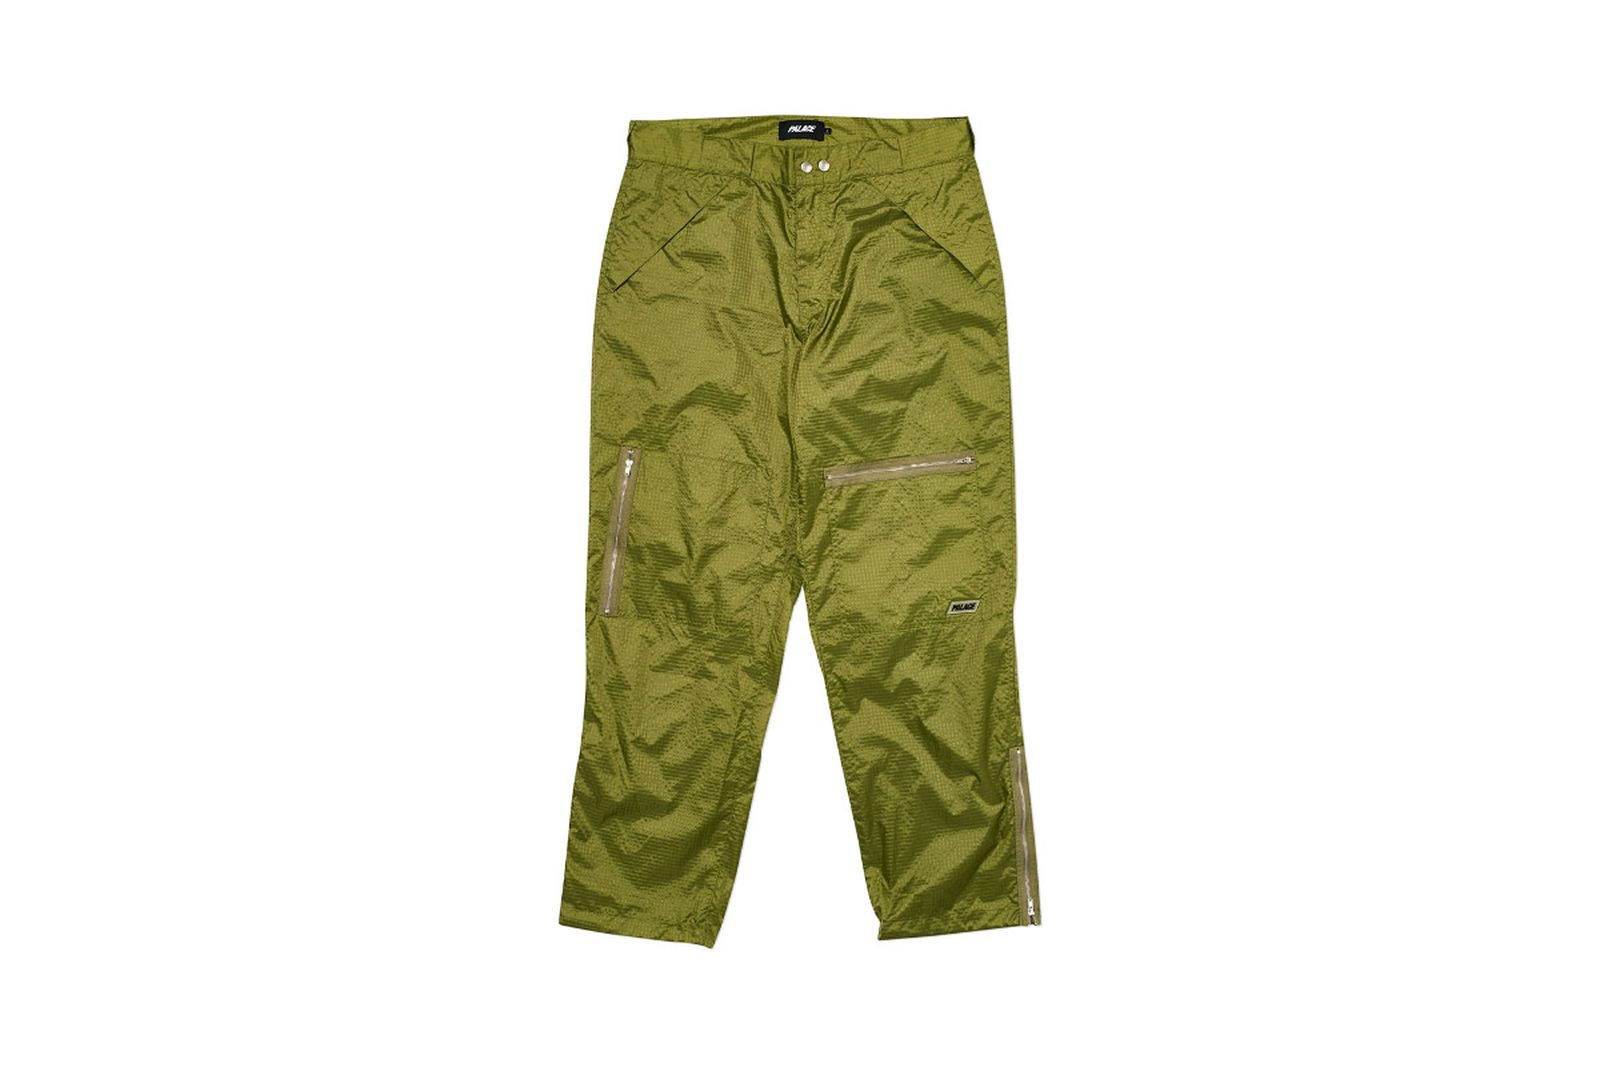 Palace 2019 Autumn Pant Flight green front fw19